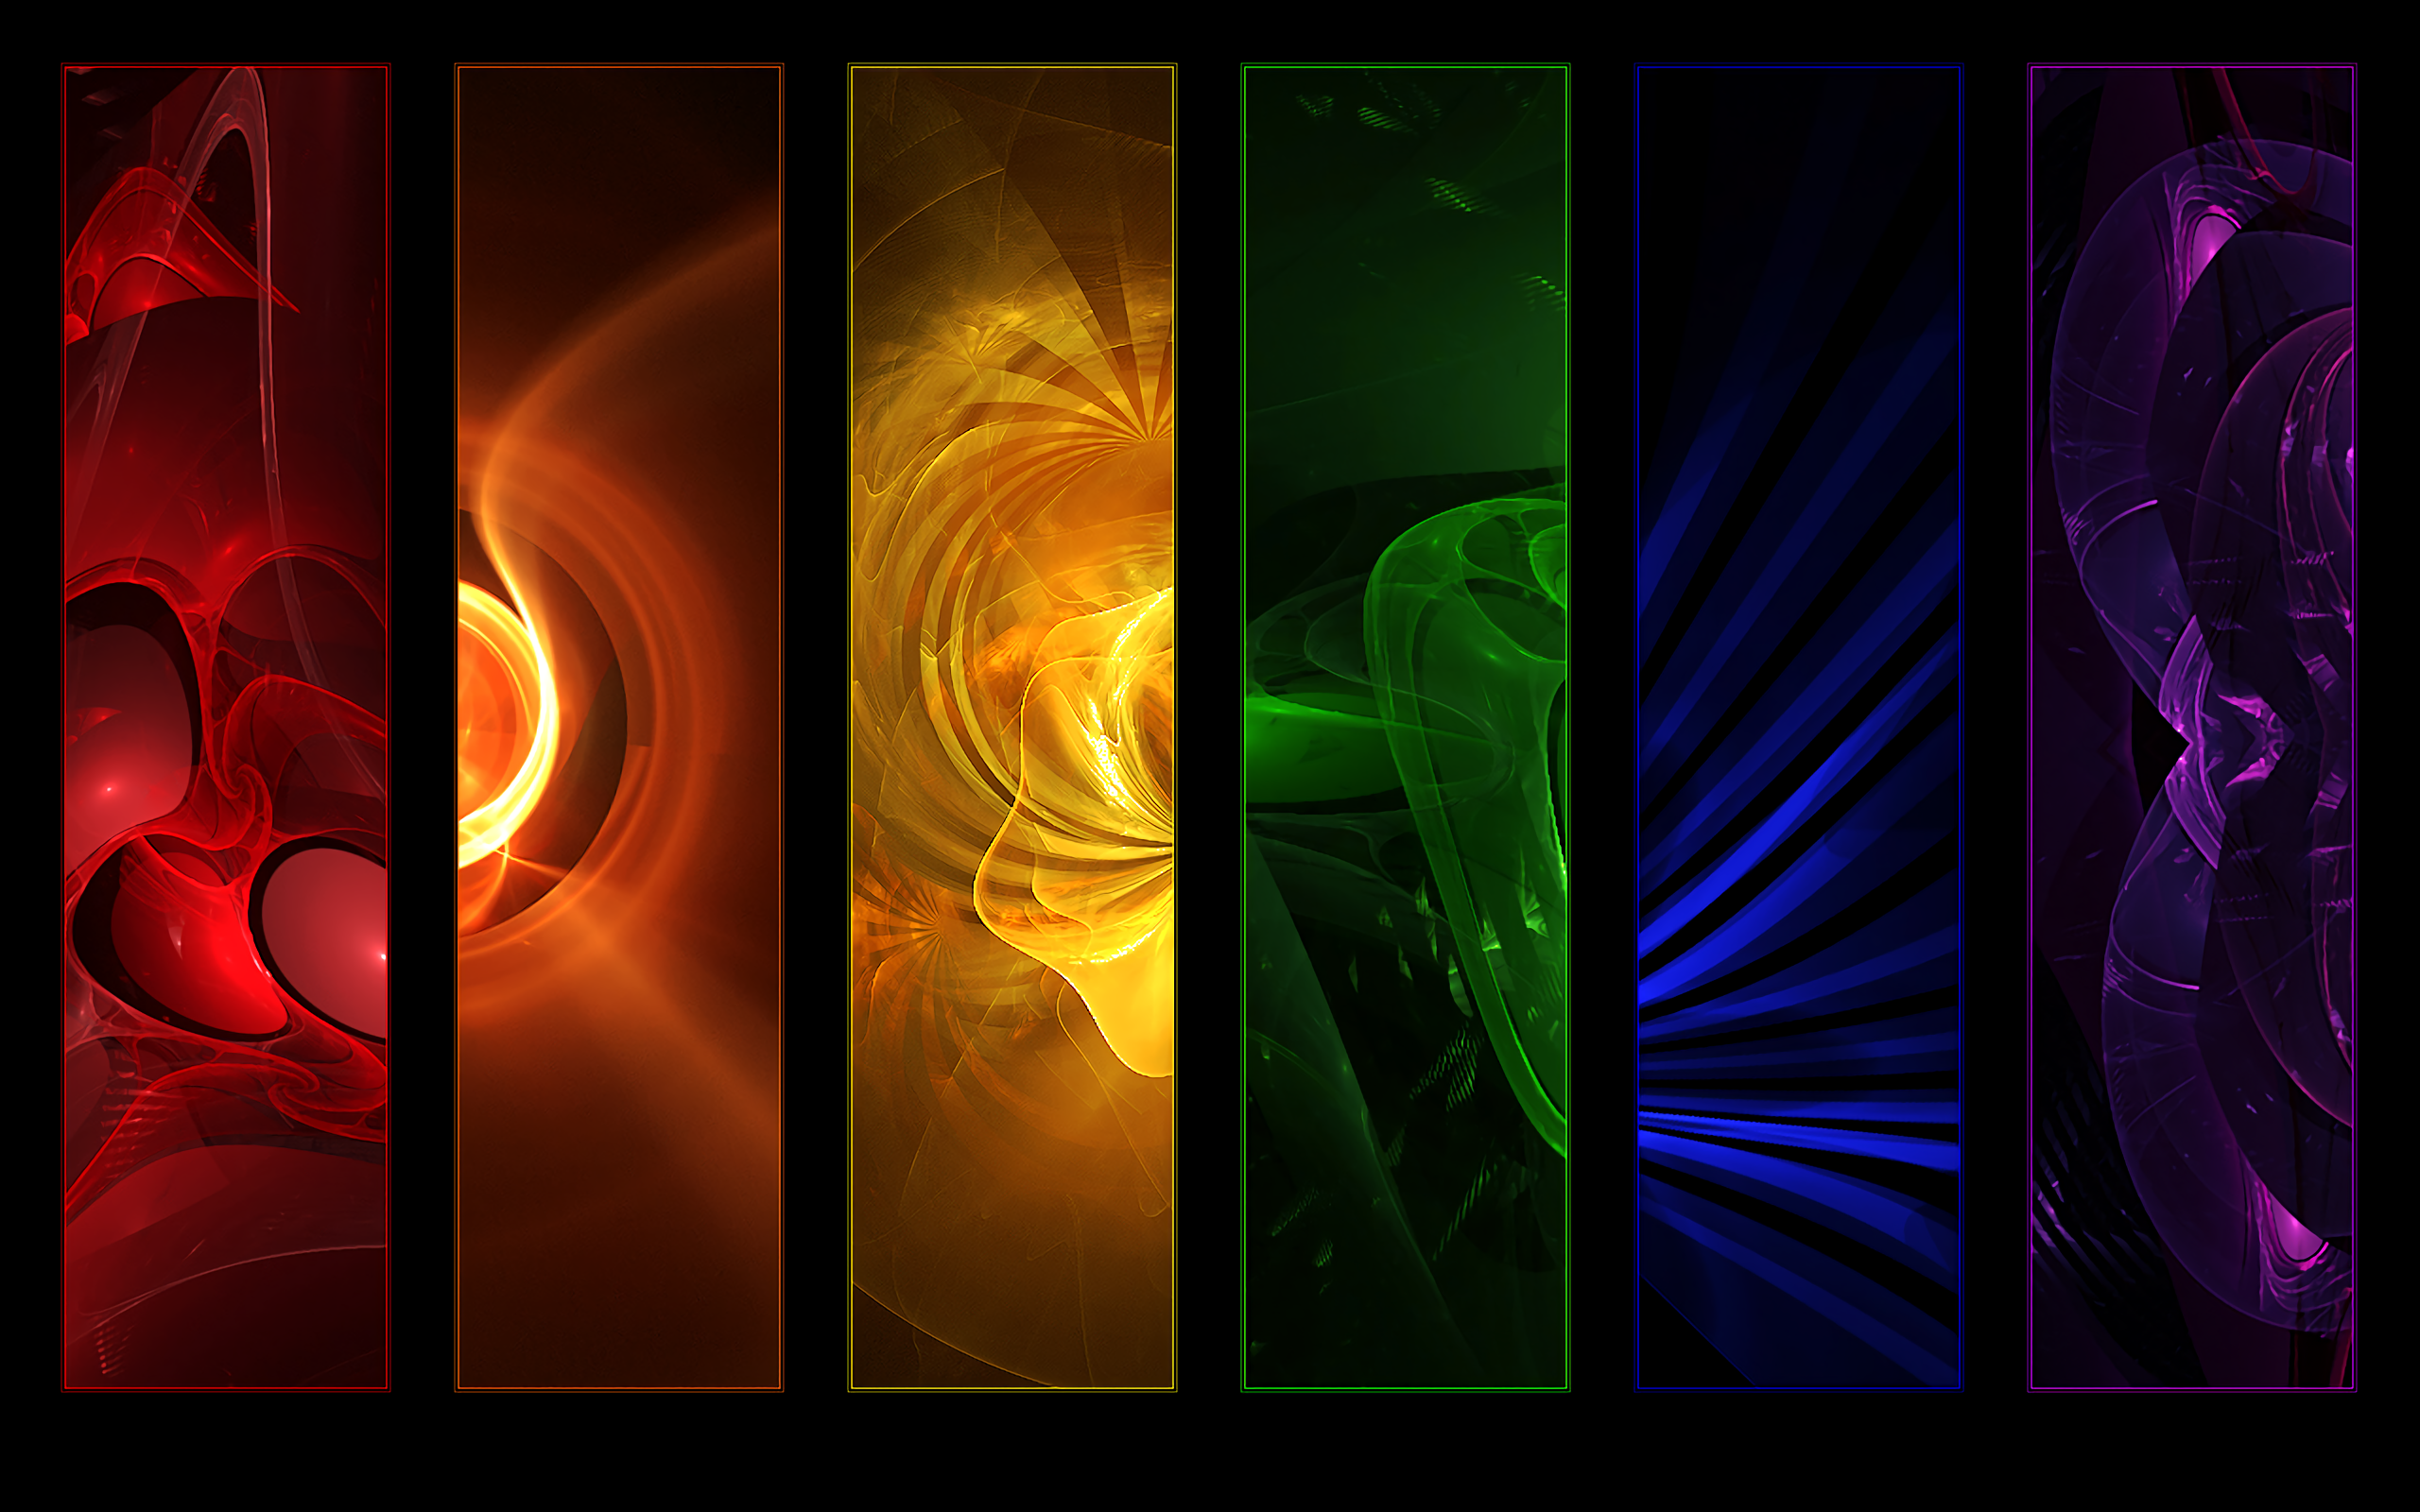 Download Free Abstract Wallpapers 2560x1600 px